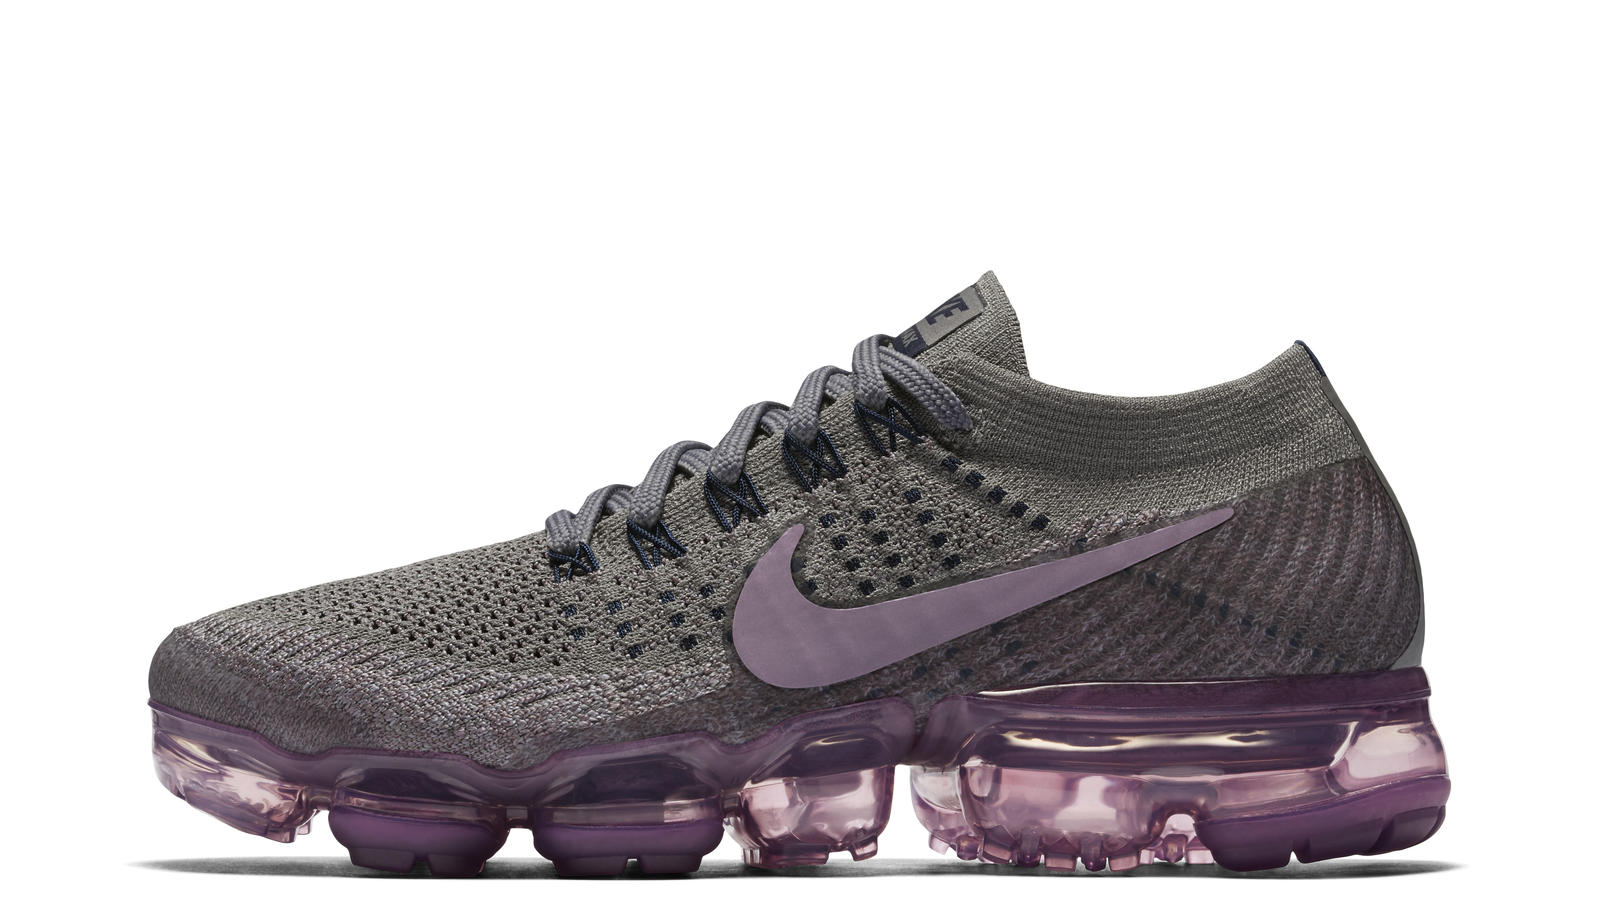 Shades of VaporMax 4